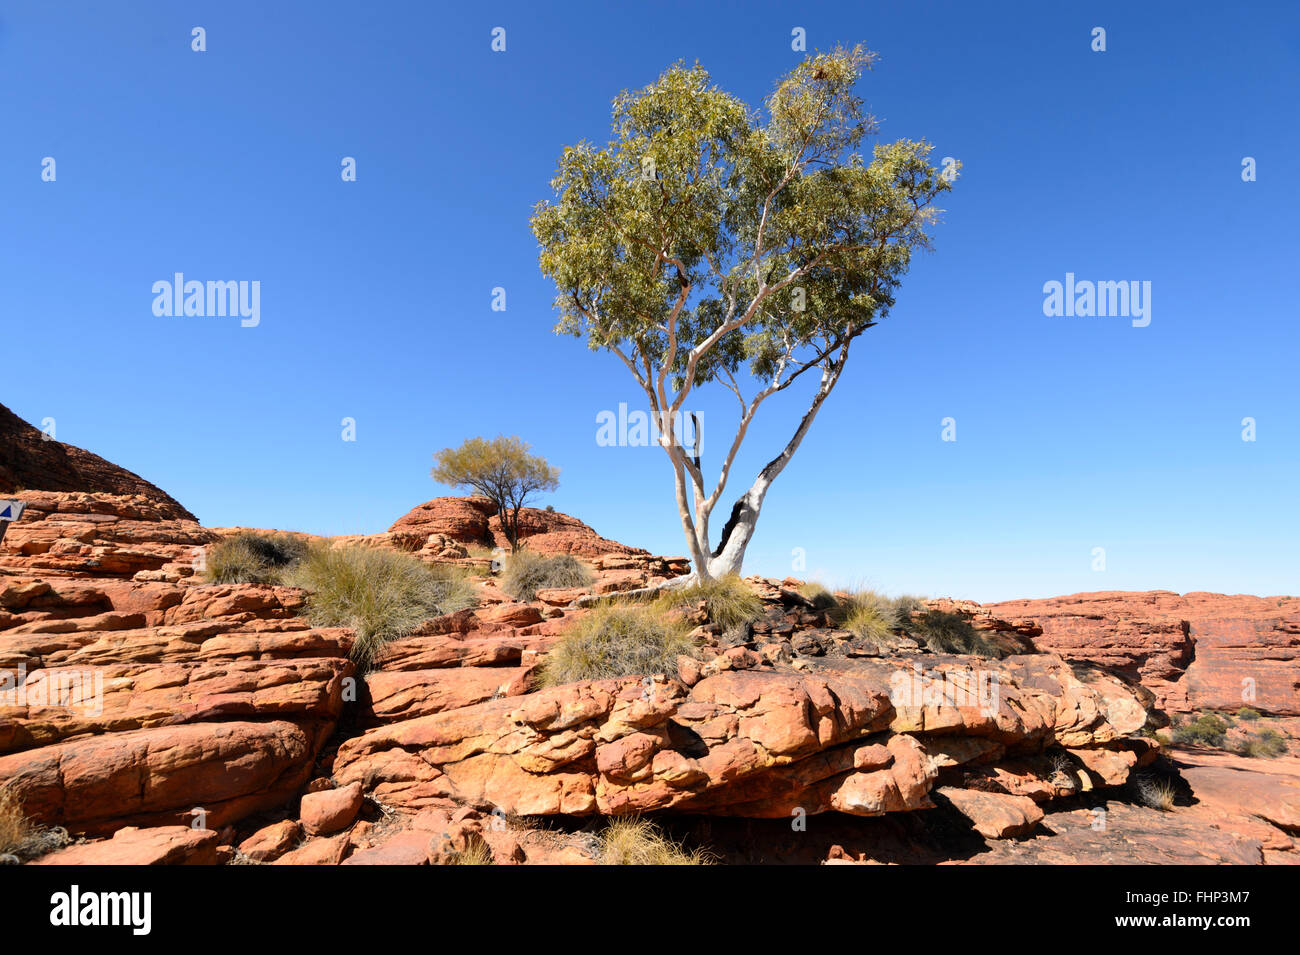 King's Canyon, Northern Territory, Australia - Stock Image